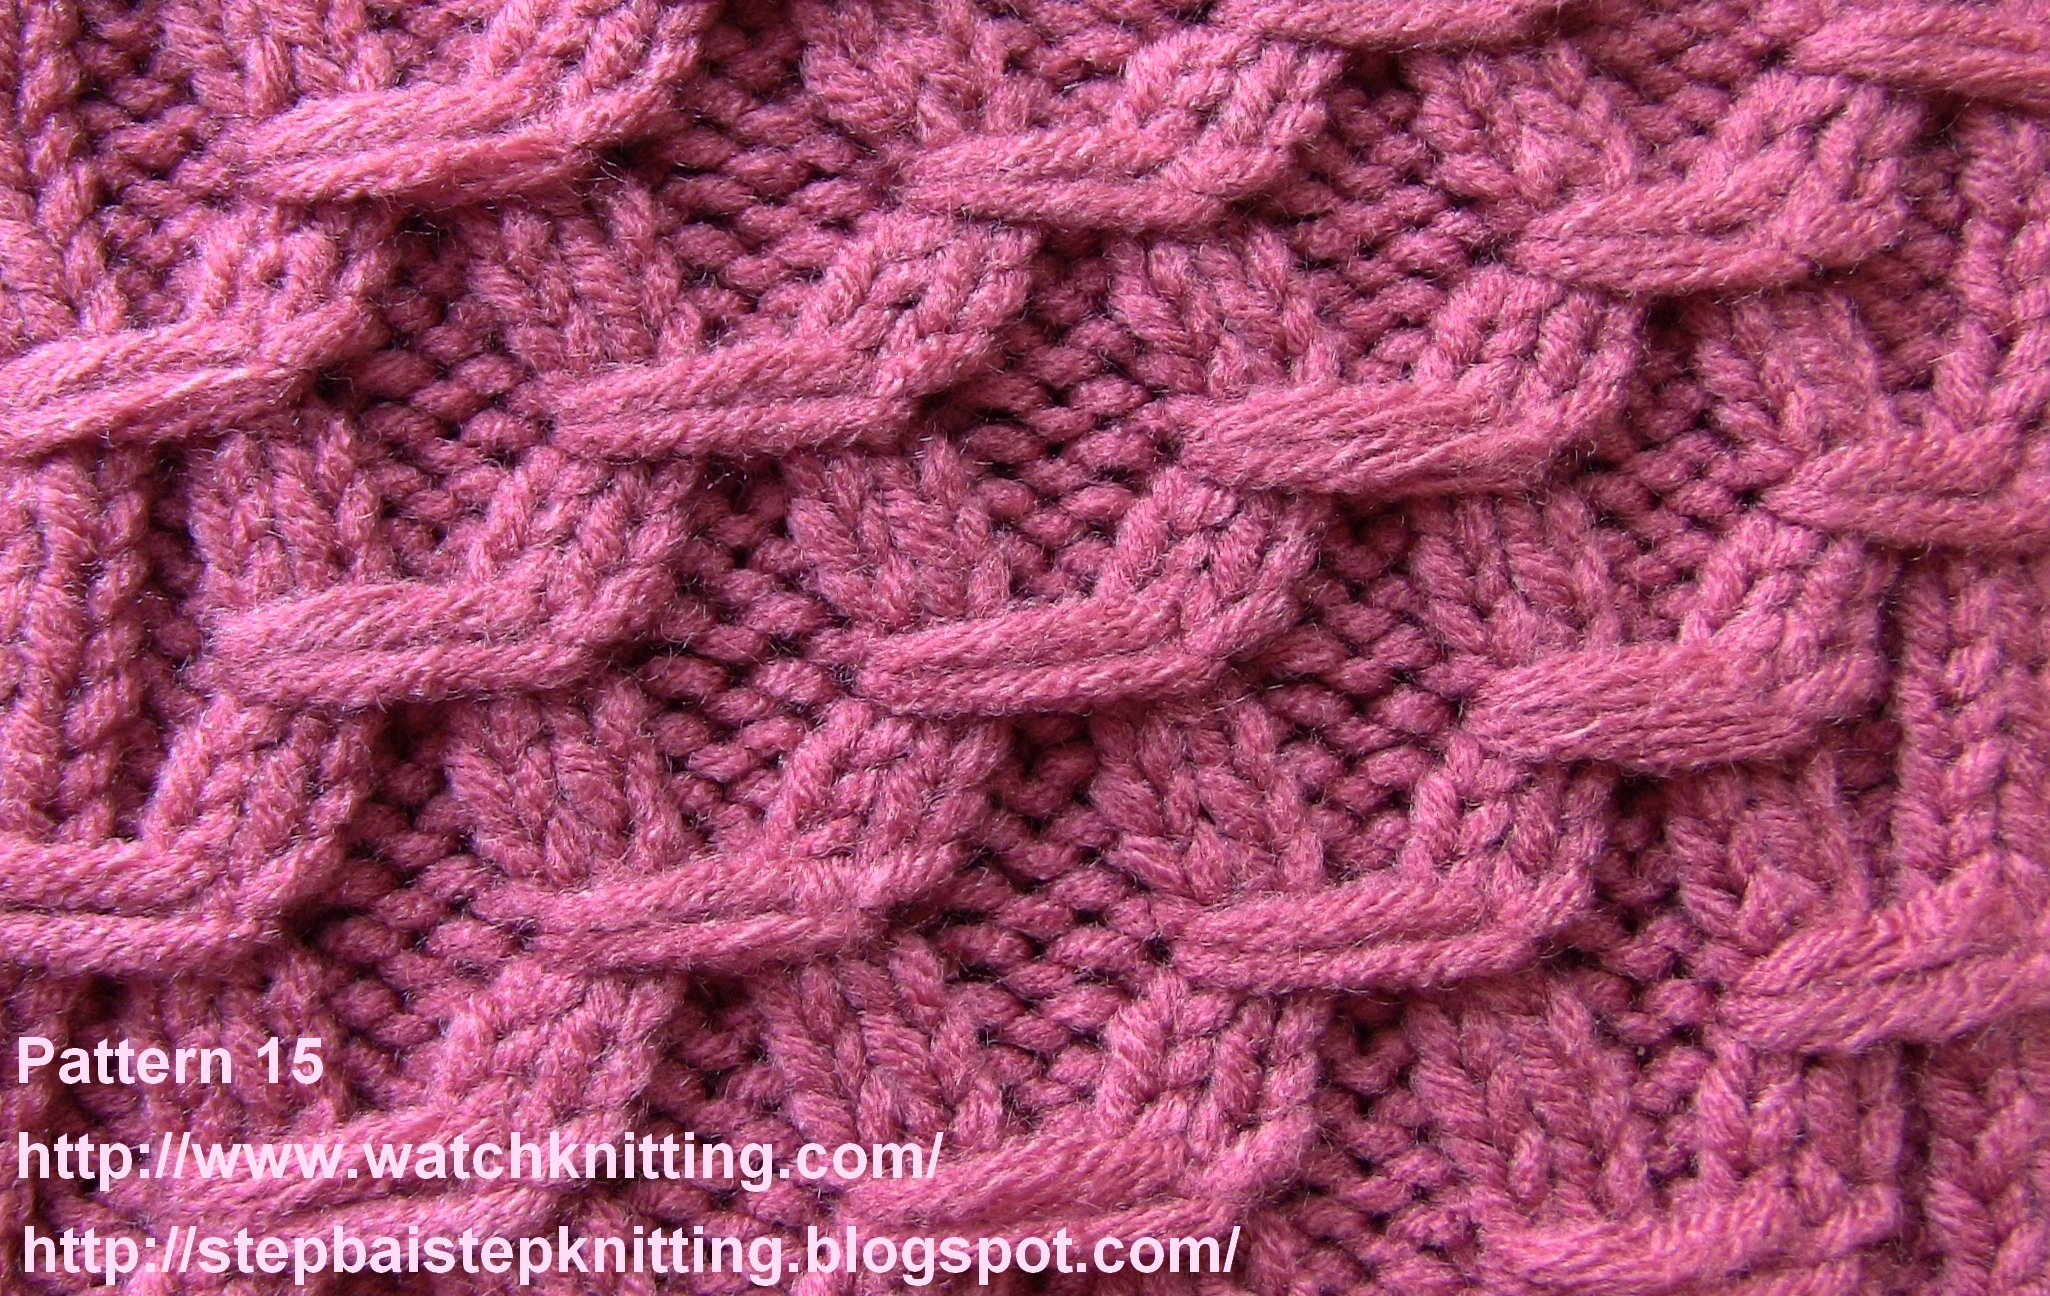 Stitch Patterns For Knitting : Embossed Knitting Stitches Watch knitting